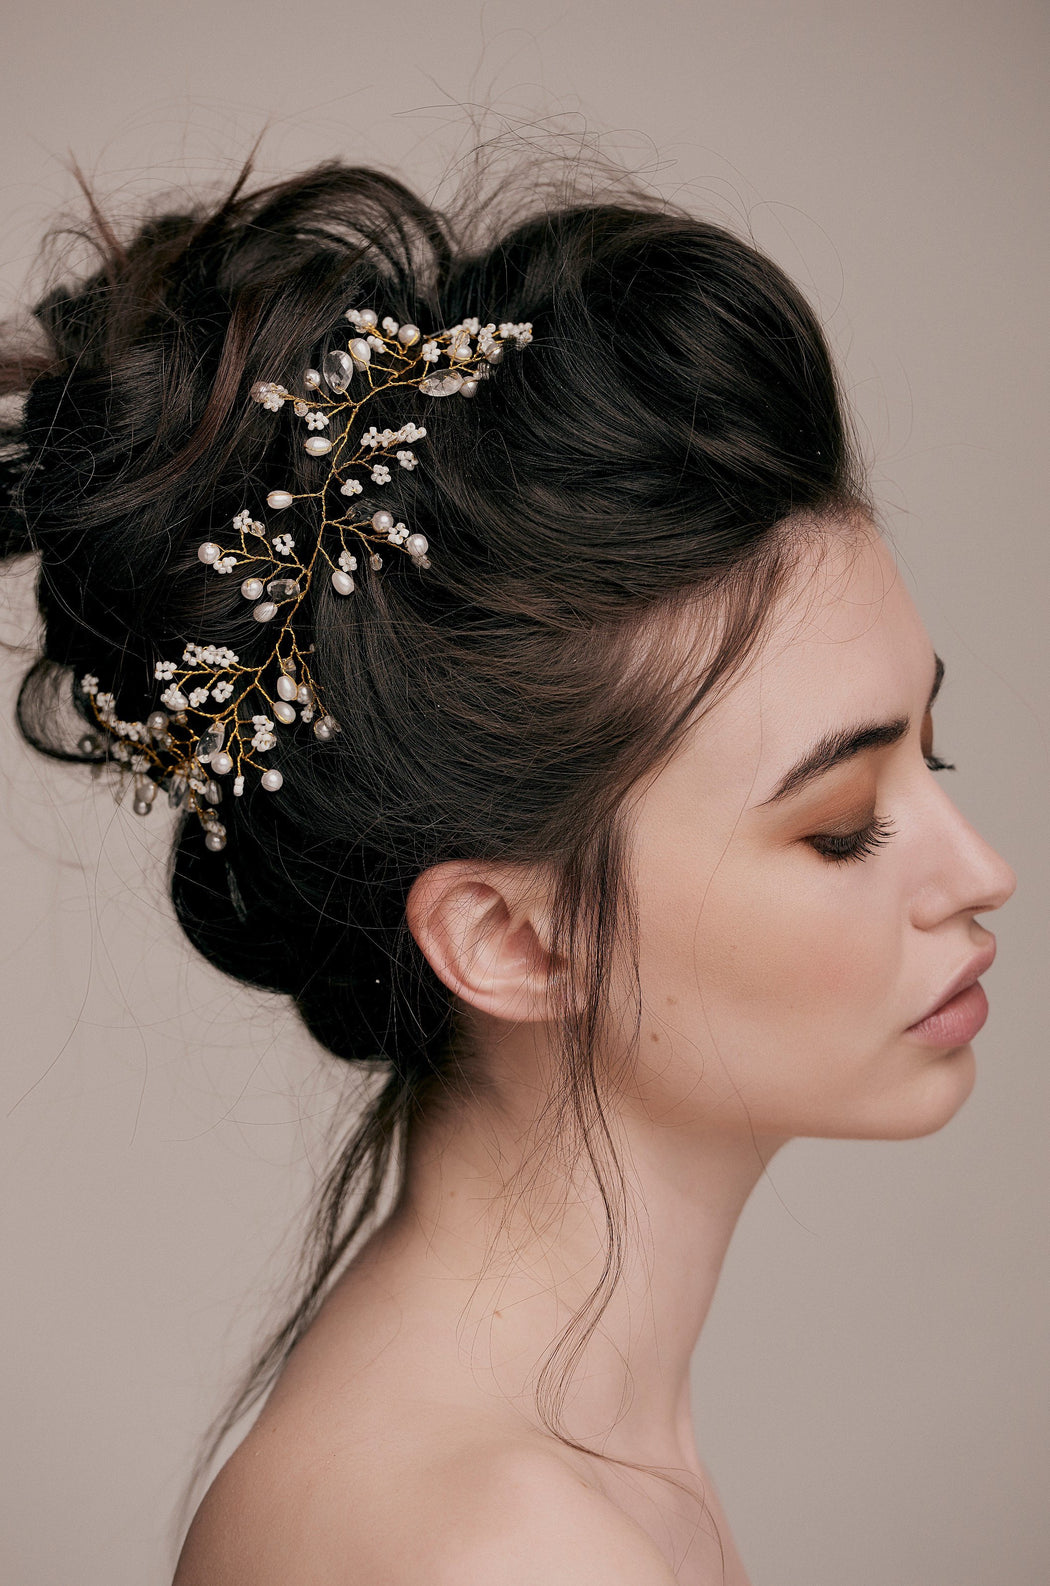 Cleo pearl beaded Hair Vine bridal hair accessory wedding hairstyle accessory taylor and rose